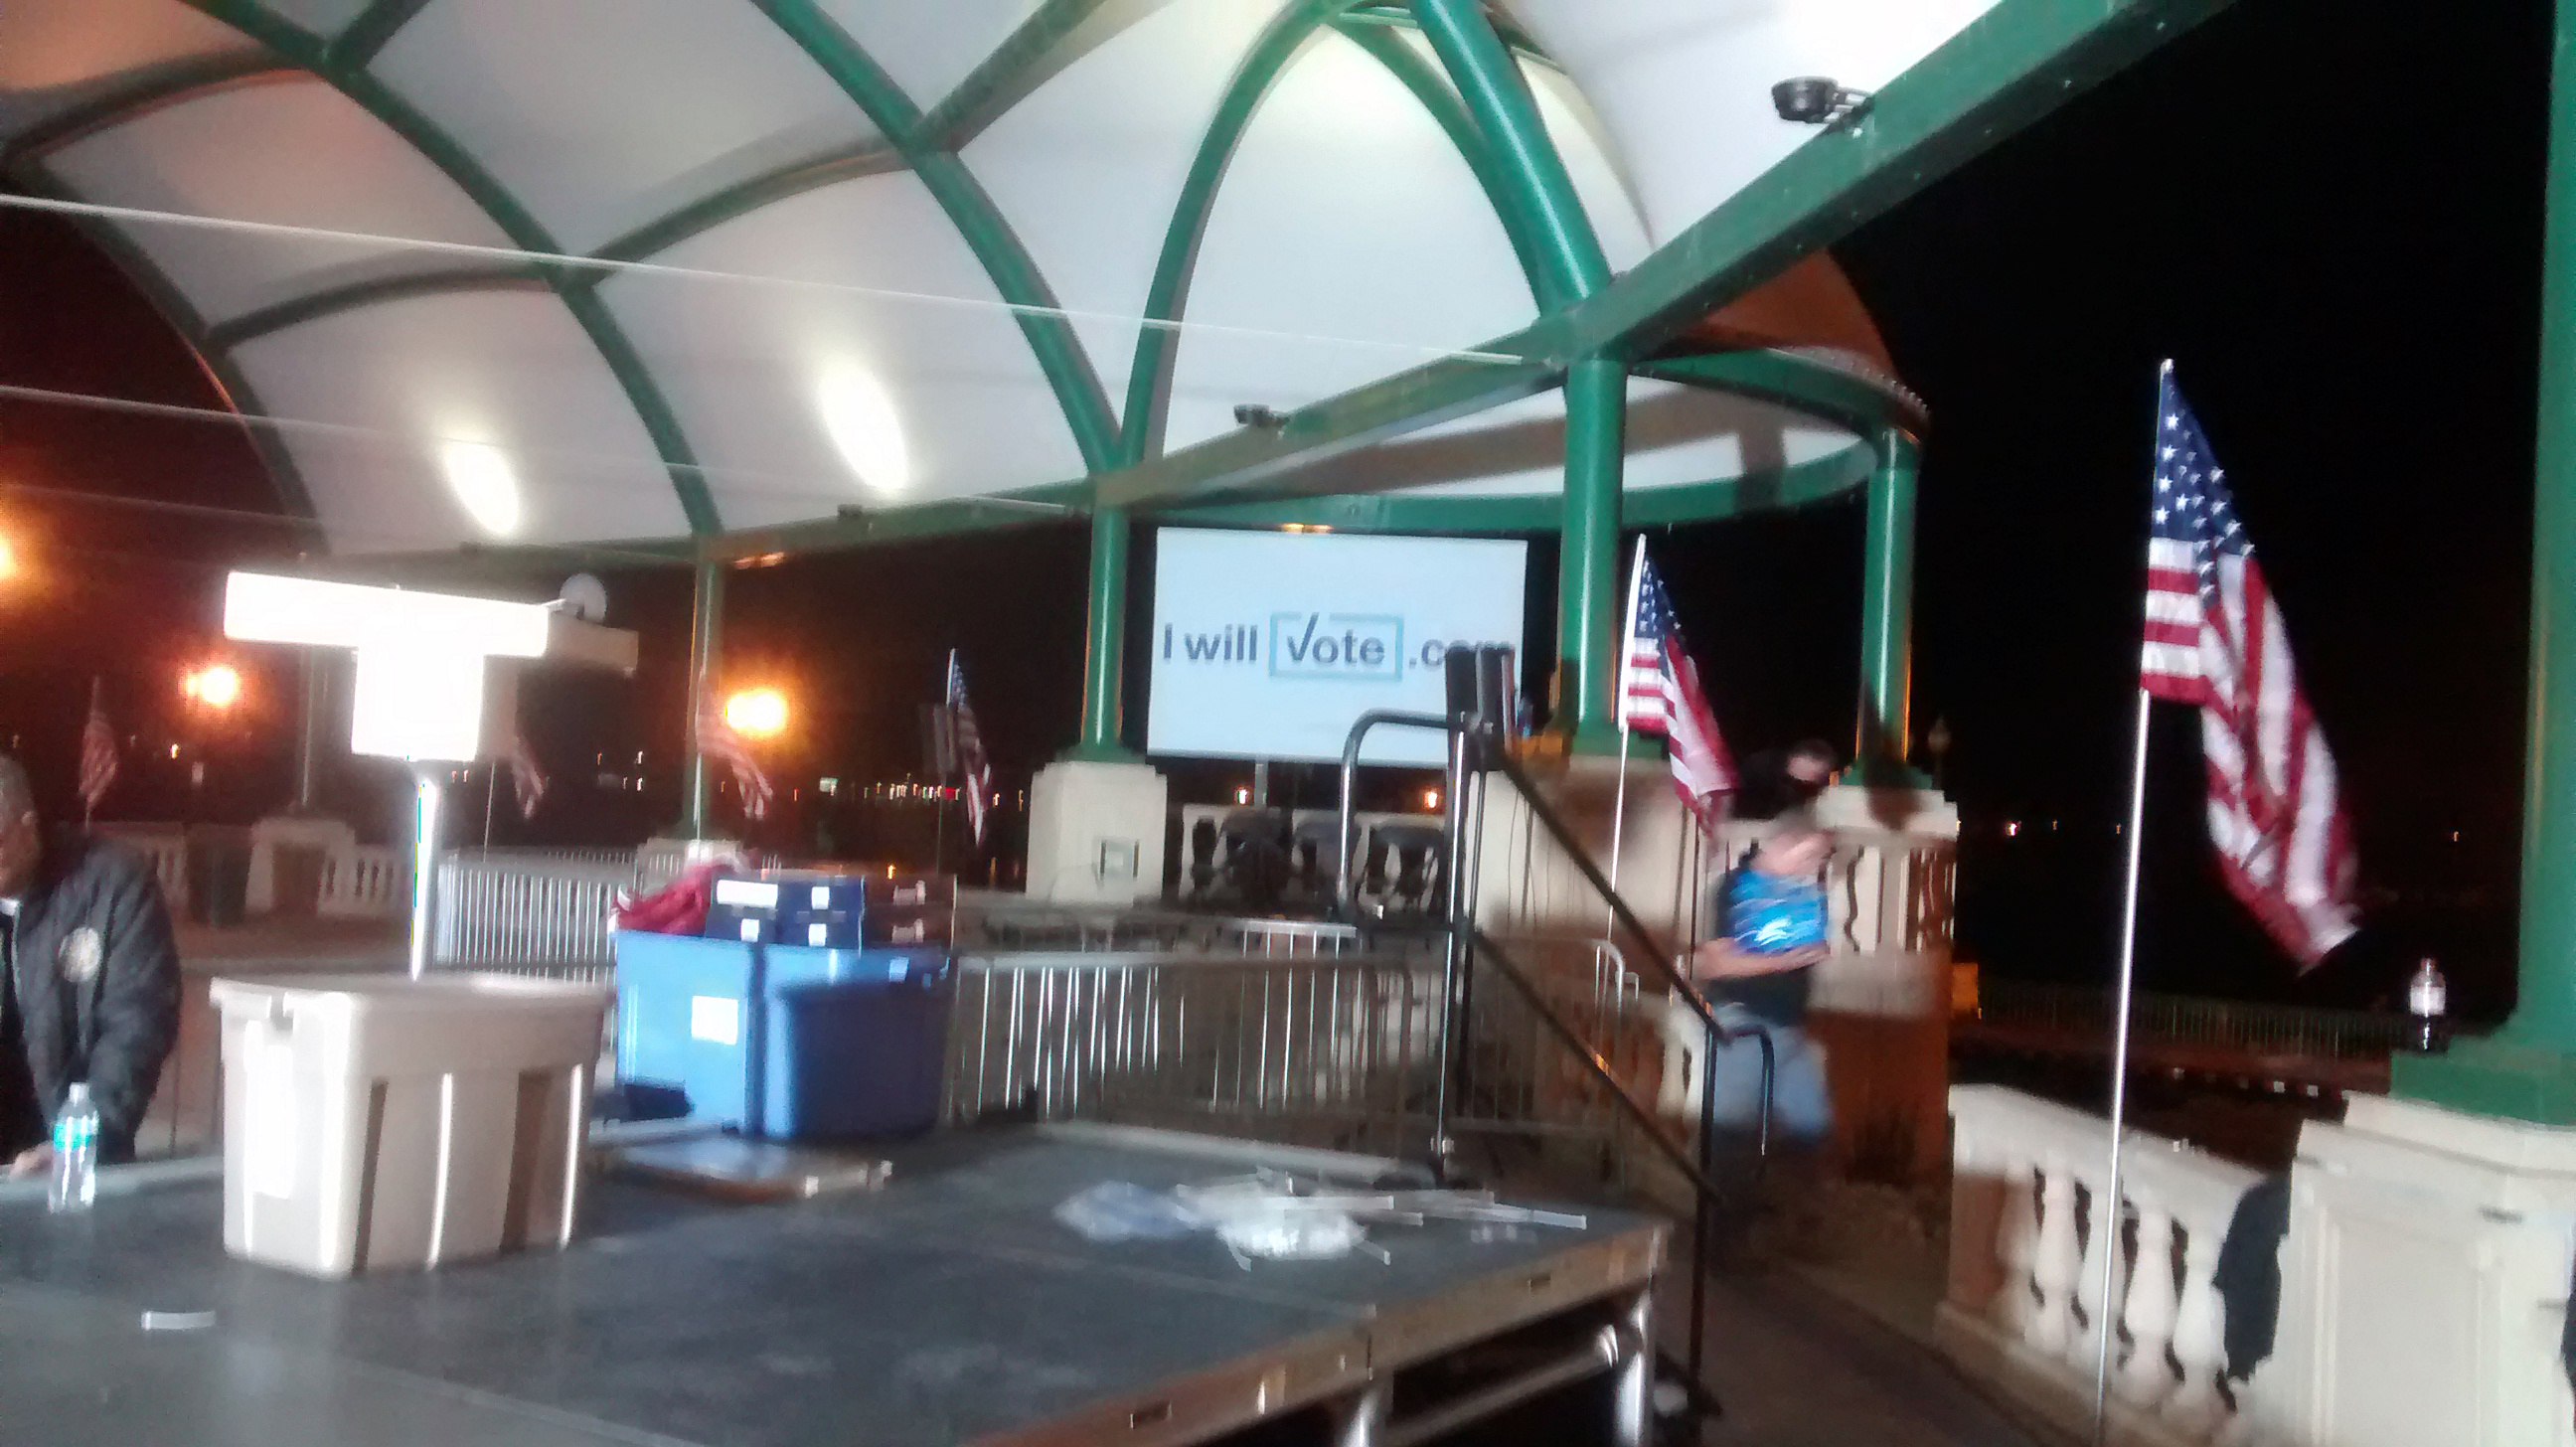 Stage with stairs setup for a political event at Larsen Park Road, Sioux City, Iowa